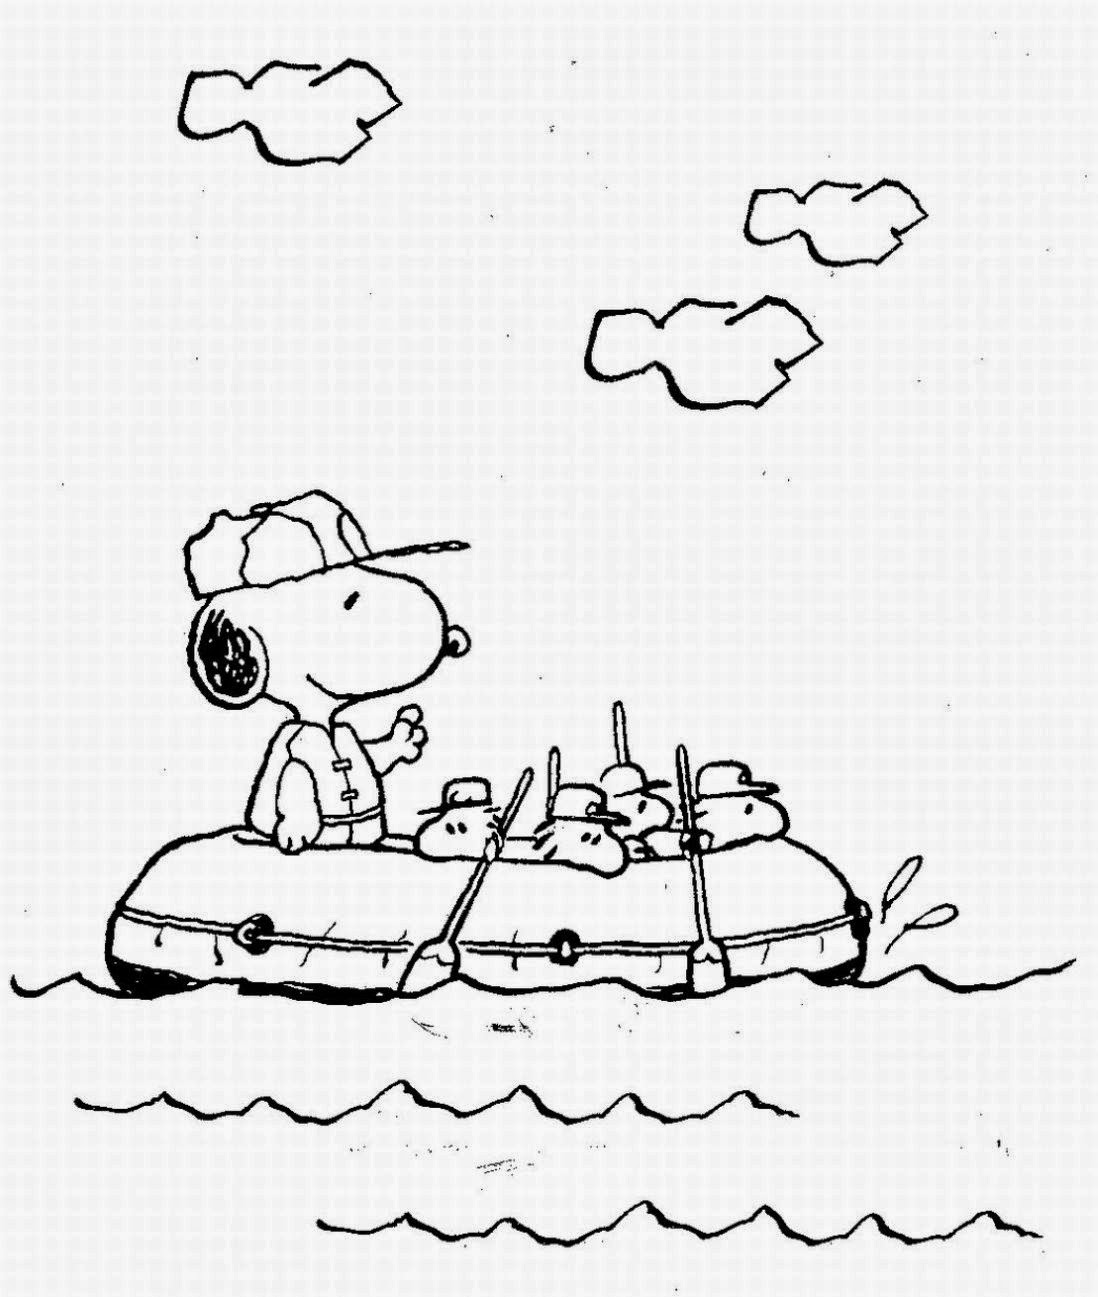 snoopy coloring sheets printable snoopy coloring pages for kids cool2bkids sheets snoopy coloring